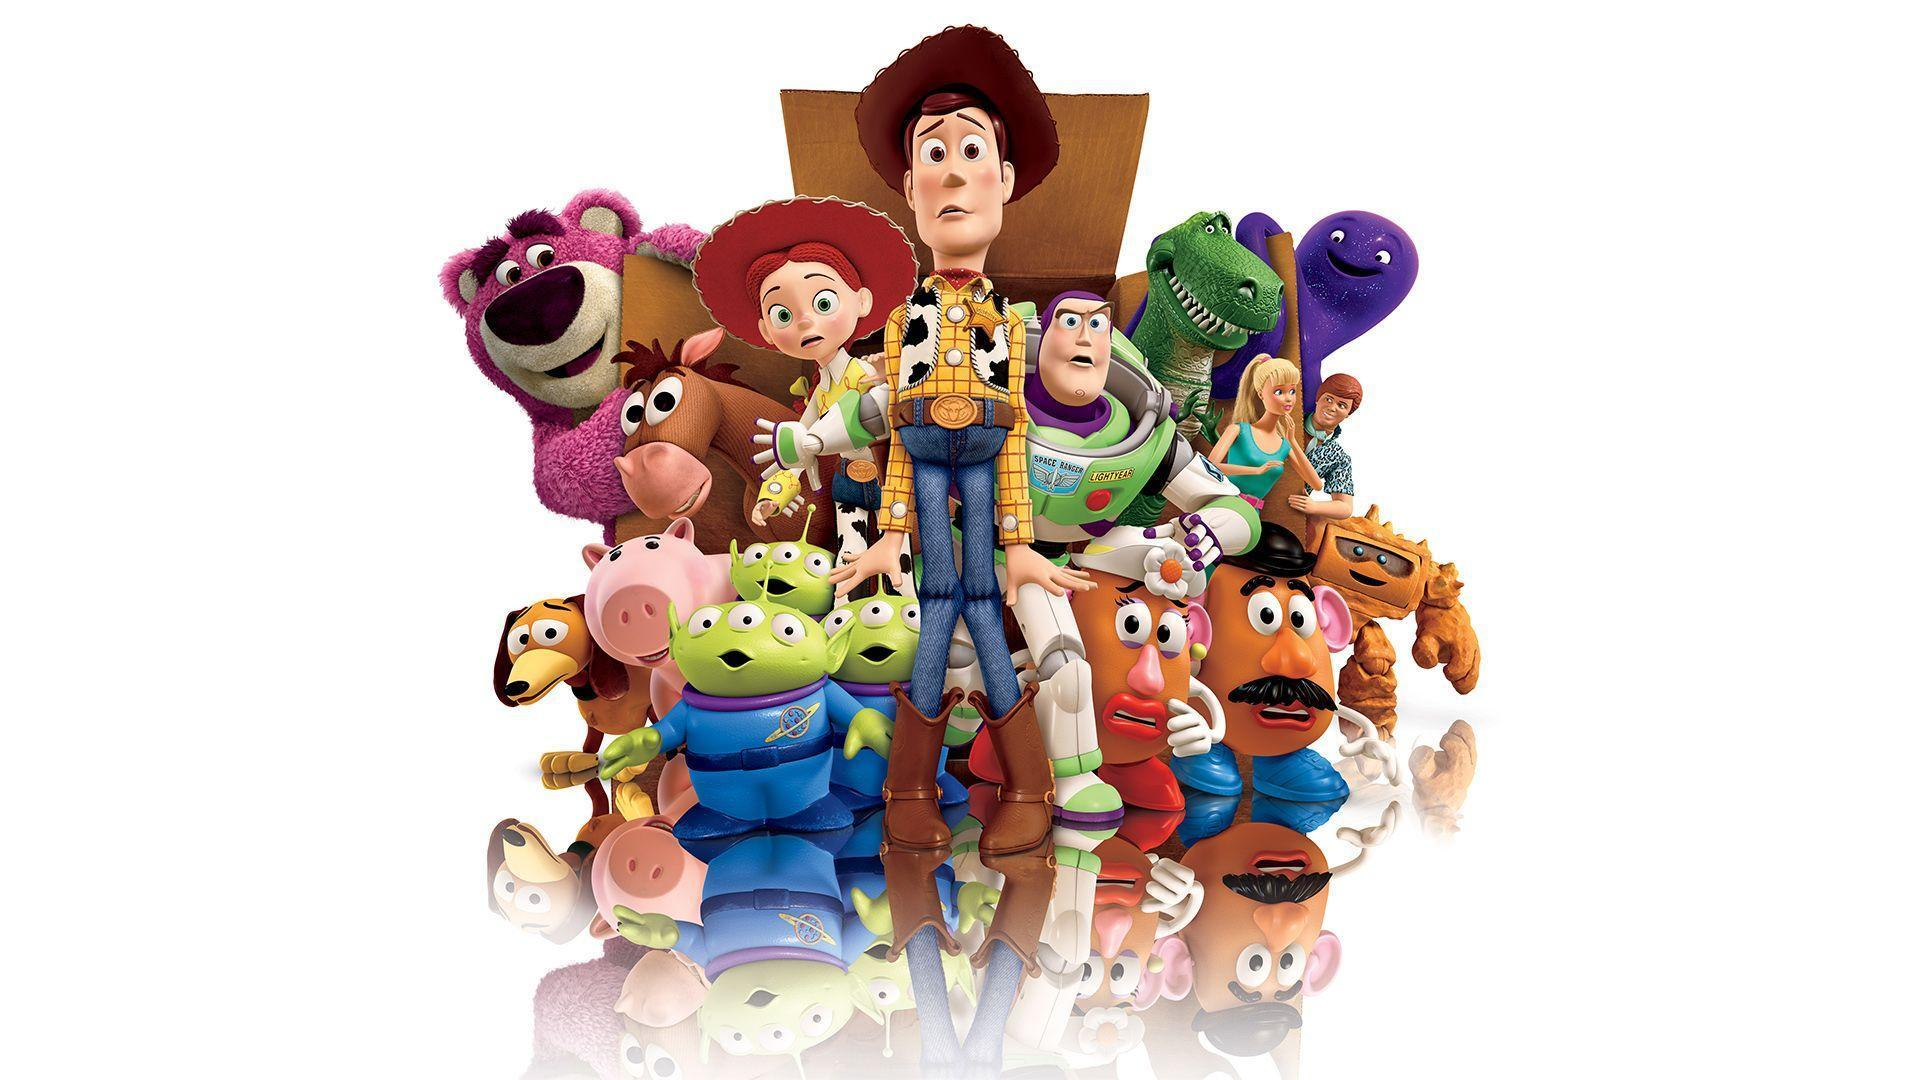 Toy Story Wallpapers - Wallpaper Cave